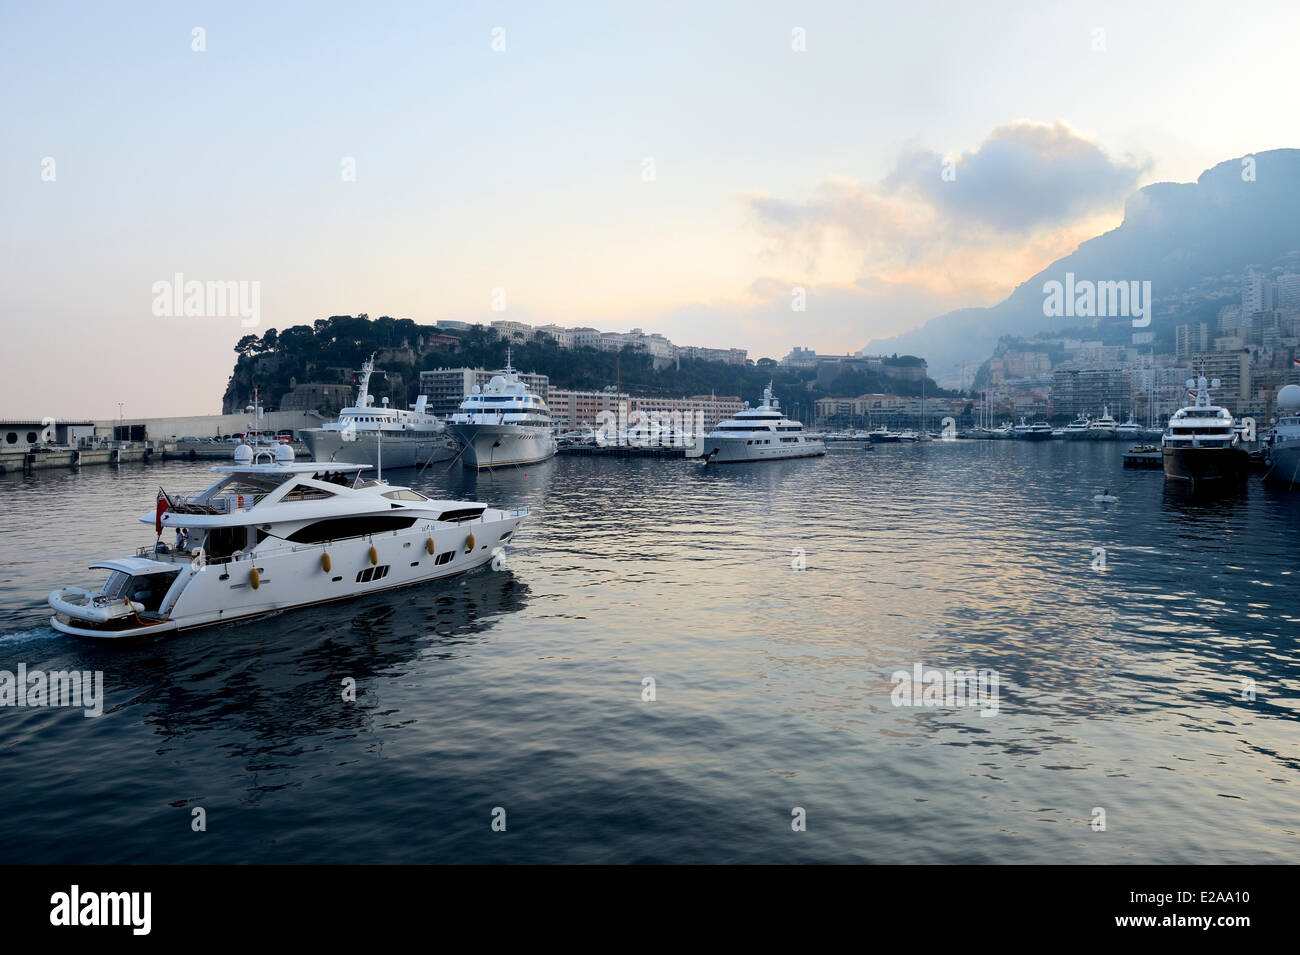 Principality of Monaco, Monaco, Port Hercule and the Rock in the background - Stock Image